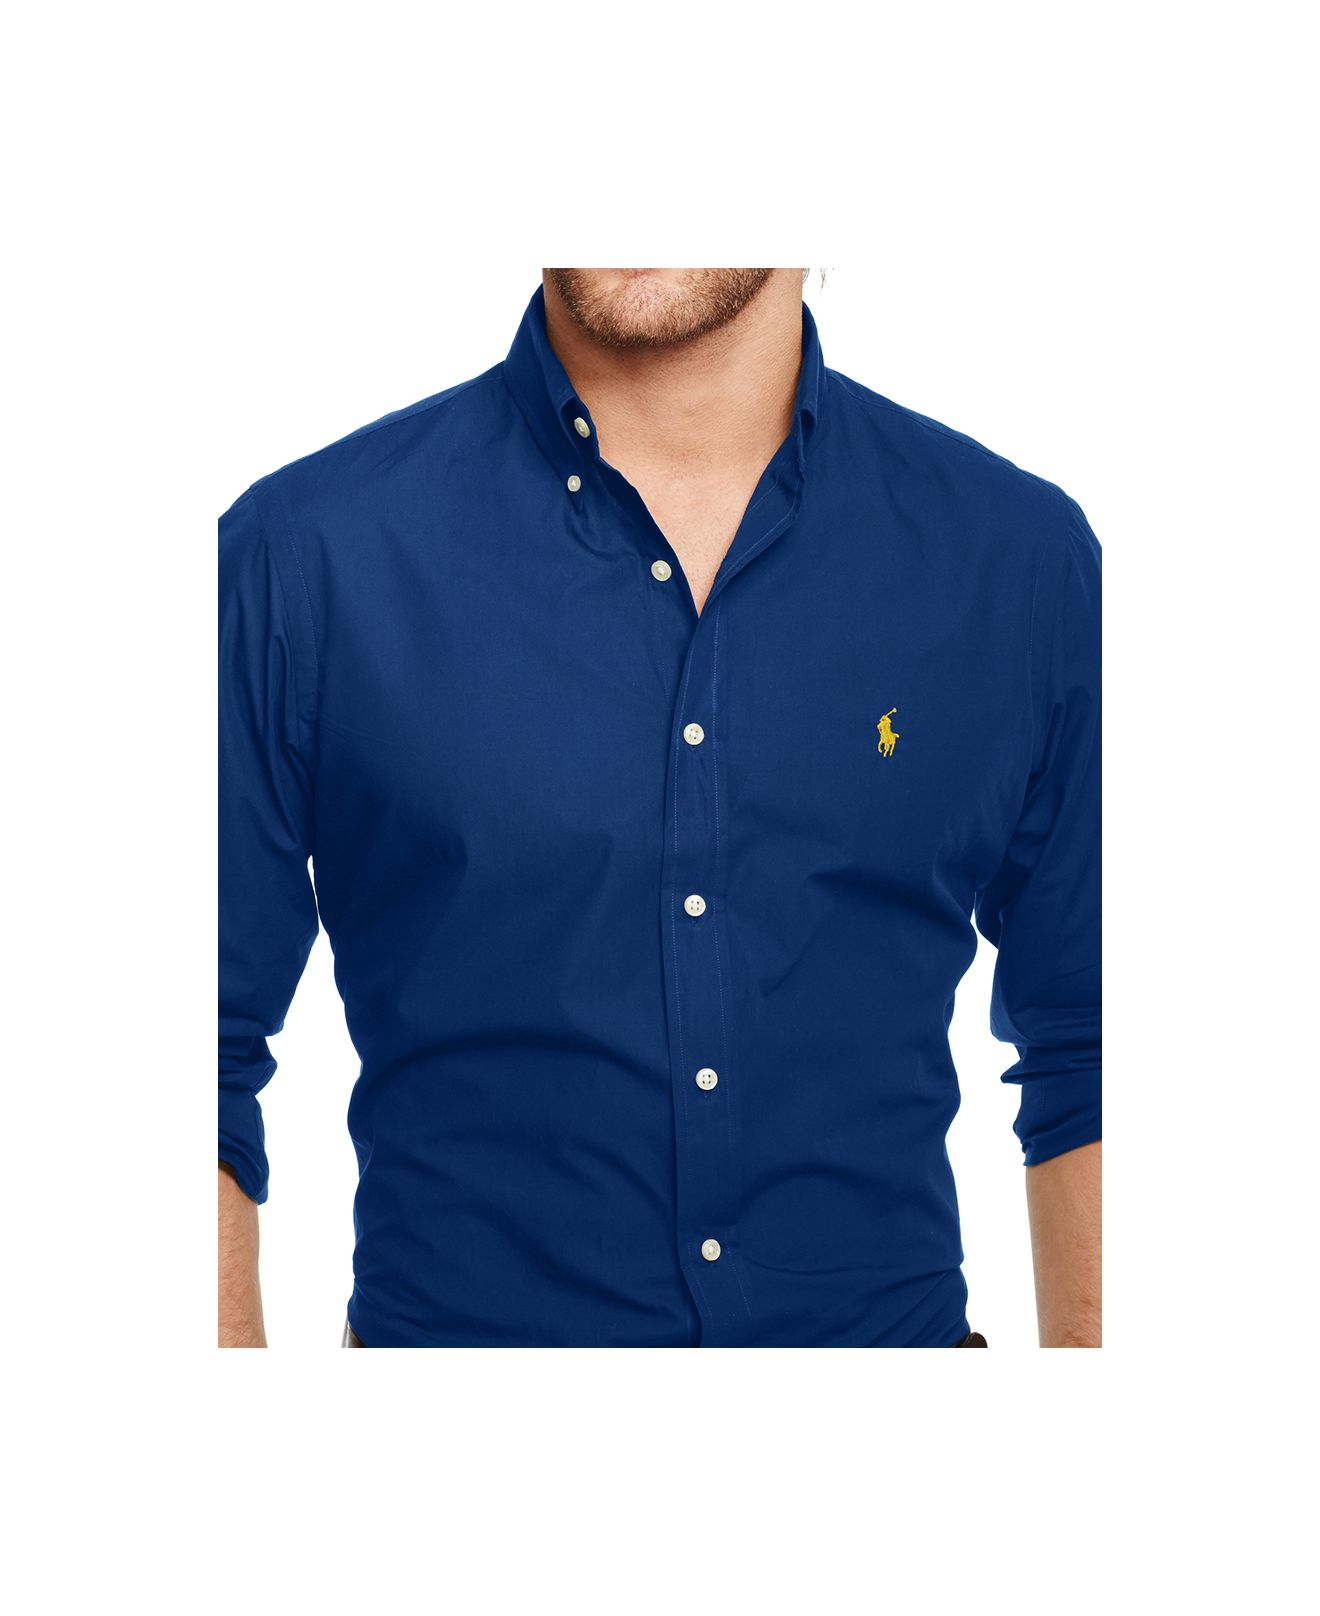 b65ea223e9de Lyst - Polo Ralph Lauren Men s Slim-fit Poplin Shirt in Blue for Men